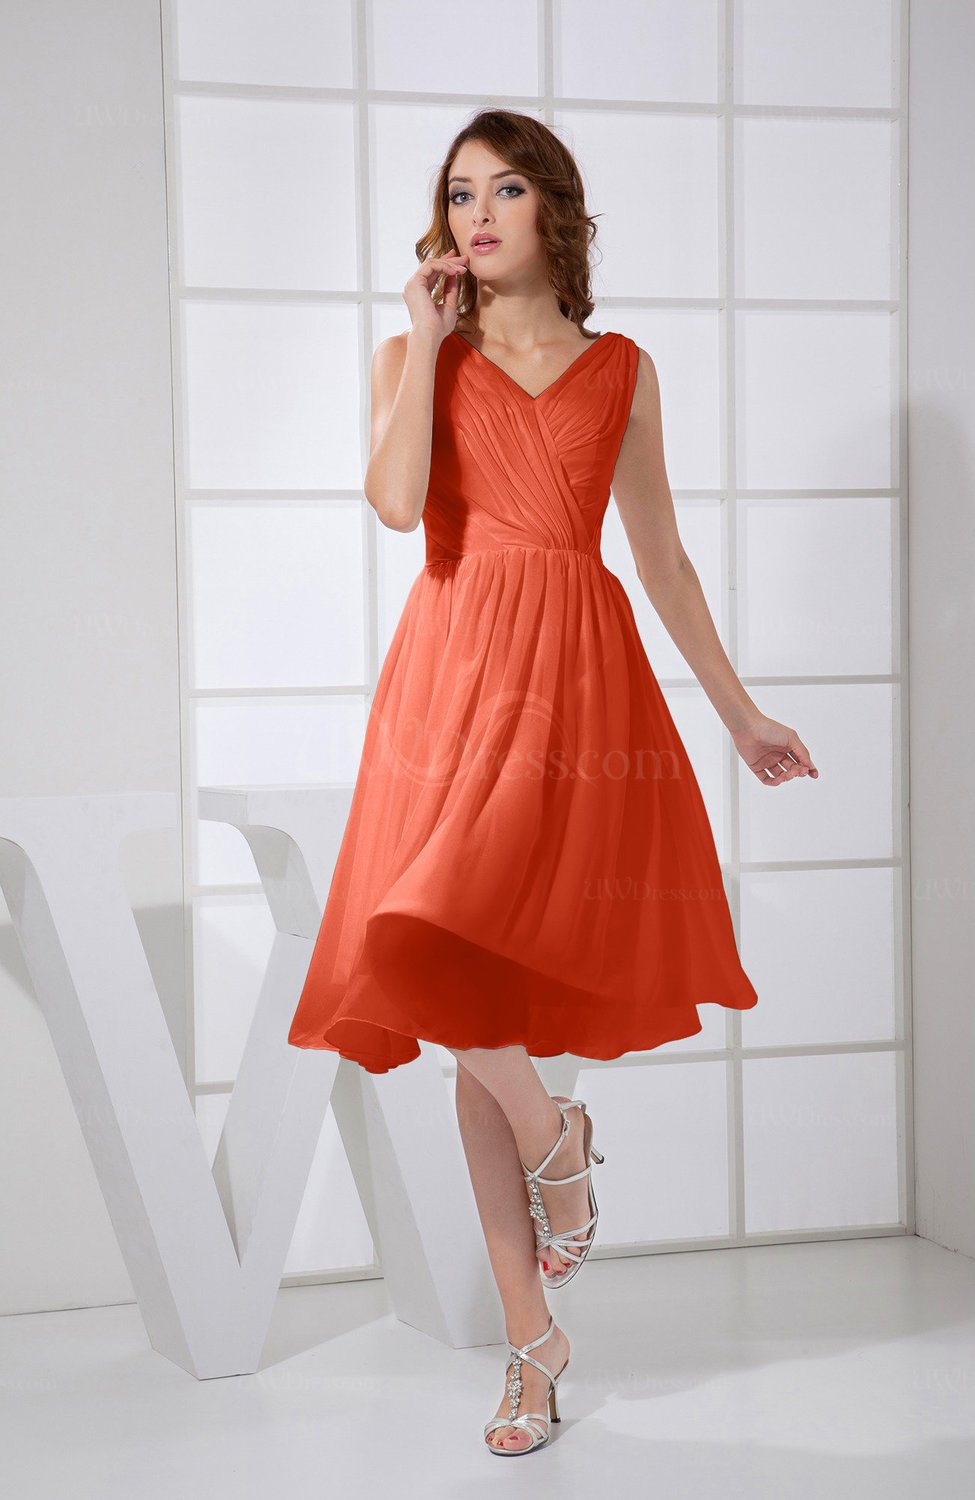 09ec6bac62d3 Persimmon Plain A-line V-neck Sleeveless Knee Length Prom Dresses (Style  D95245)